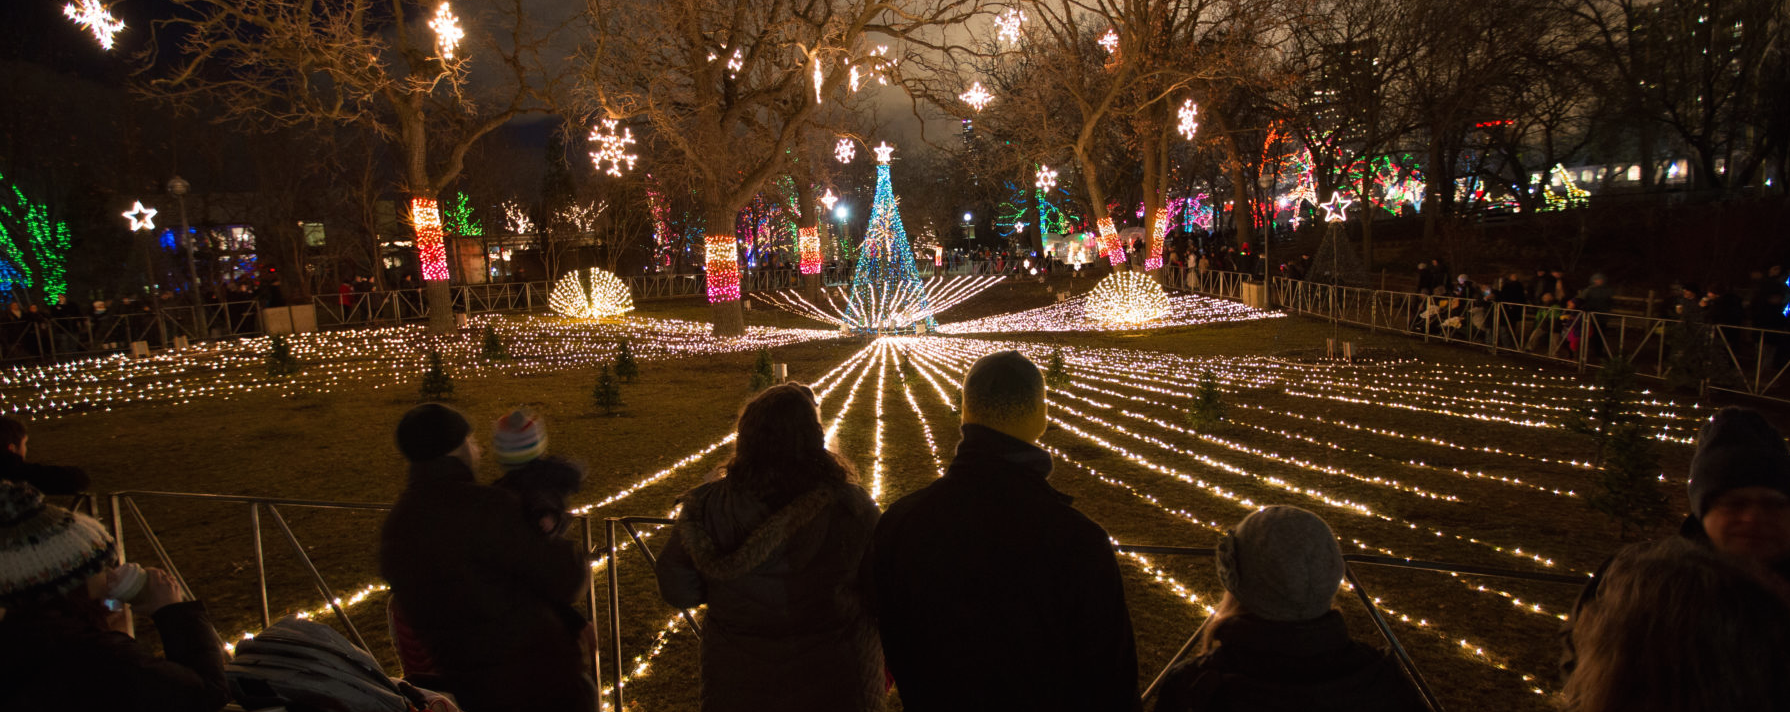 ZooLights will be back this winter — and tickets go on sale soon